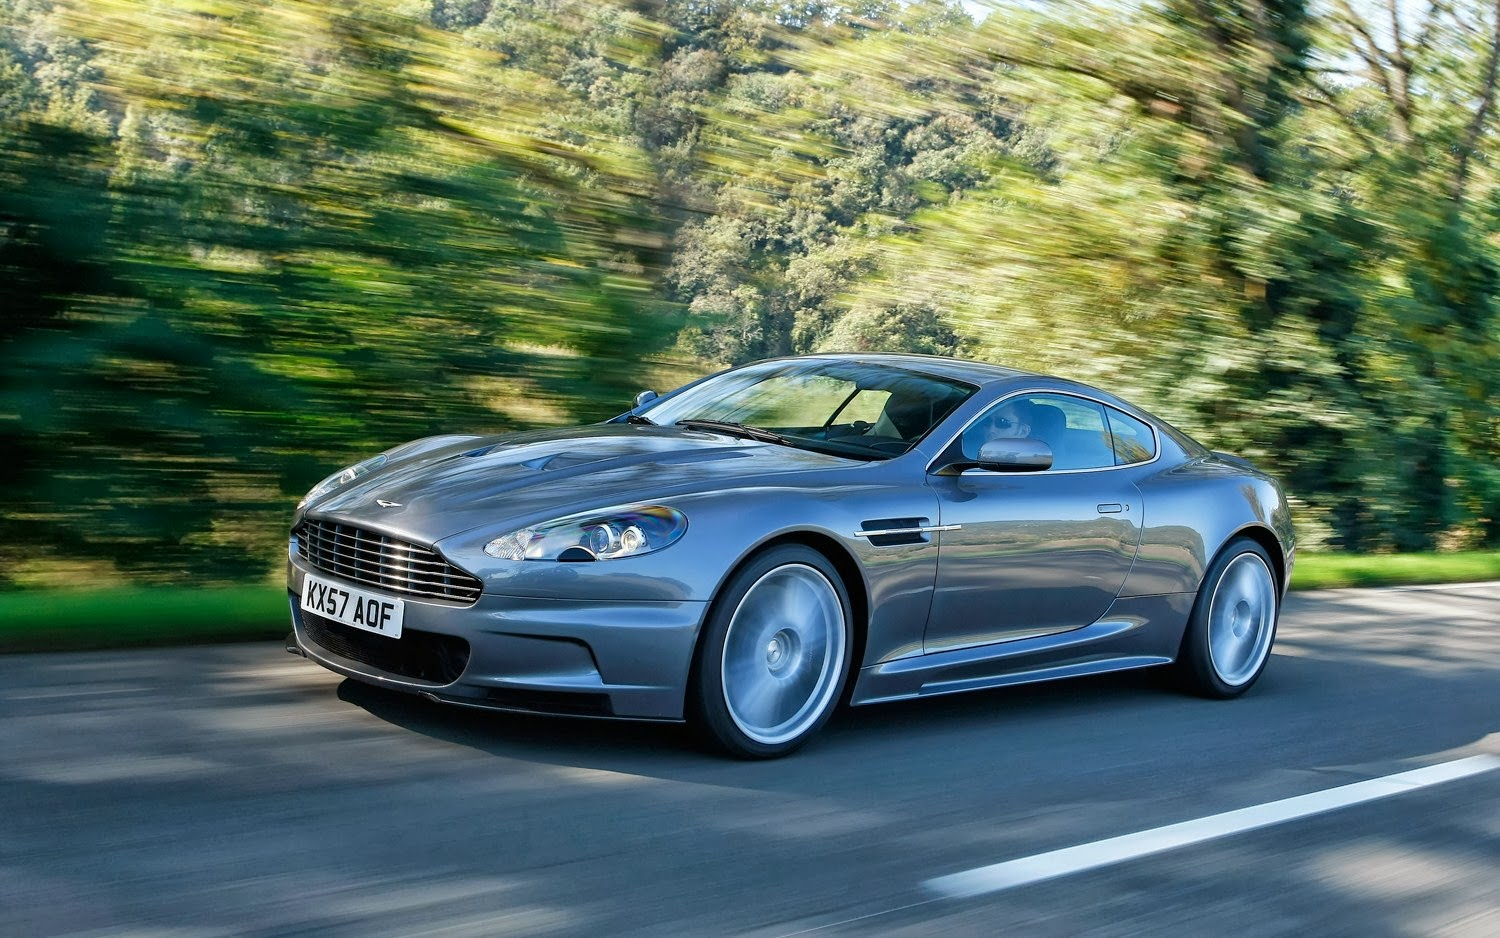 aston martin dbs ultimate edition wallpaper prices prices worldwide for cars bikes laptops etc. Black Bedroom Furniture Sets. Home Design Ideas